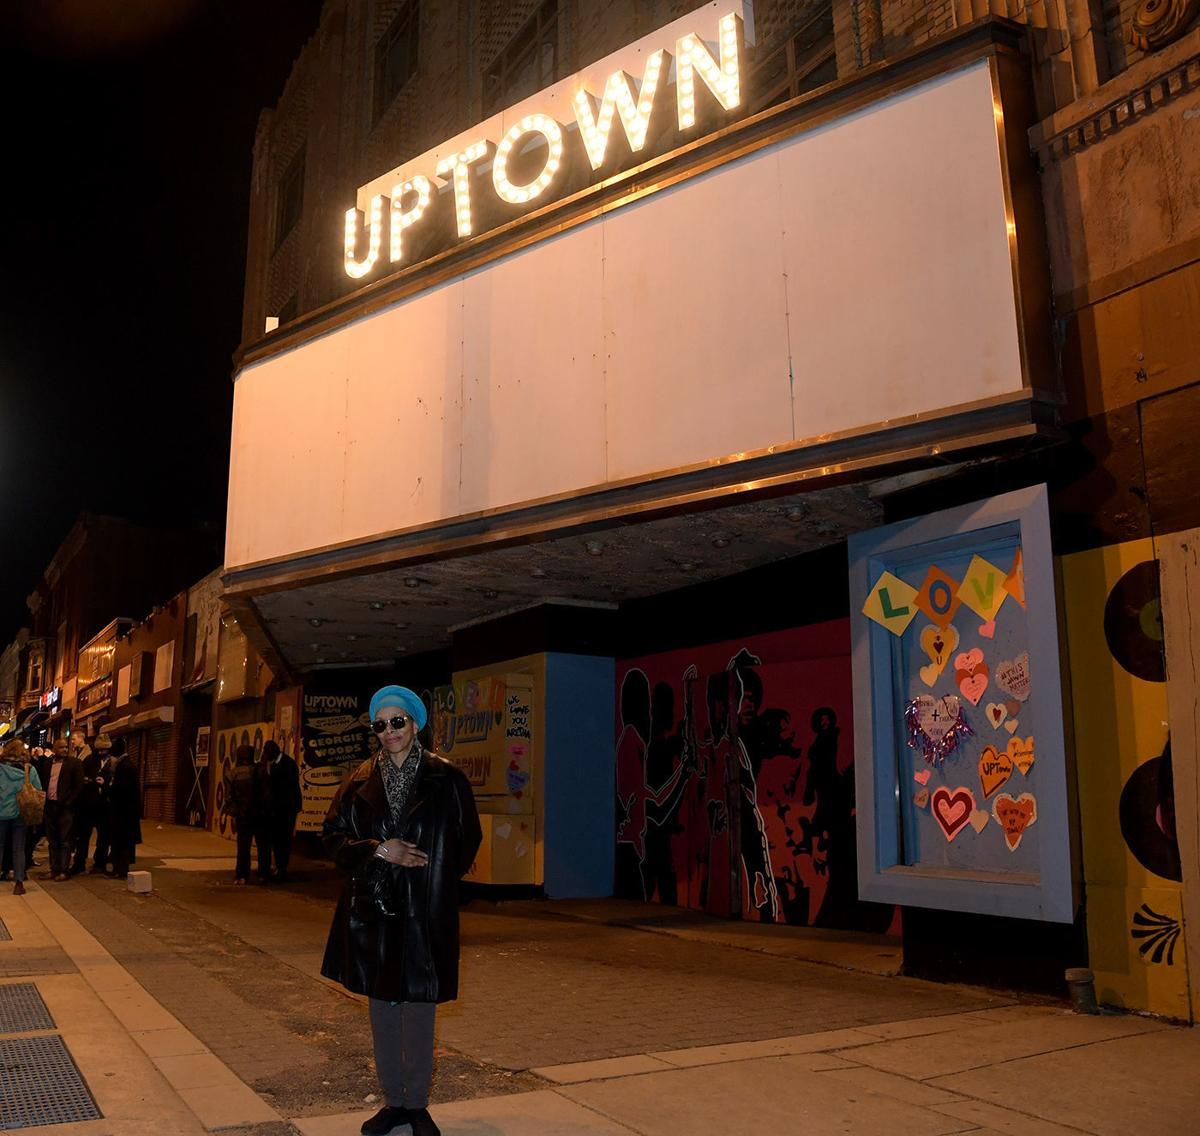 Light Up Theater: Uptown Theater's Marquee Lights Up For Its 90th